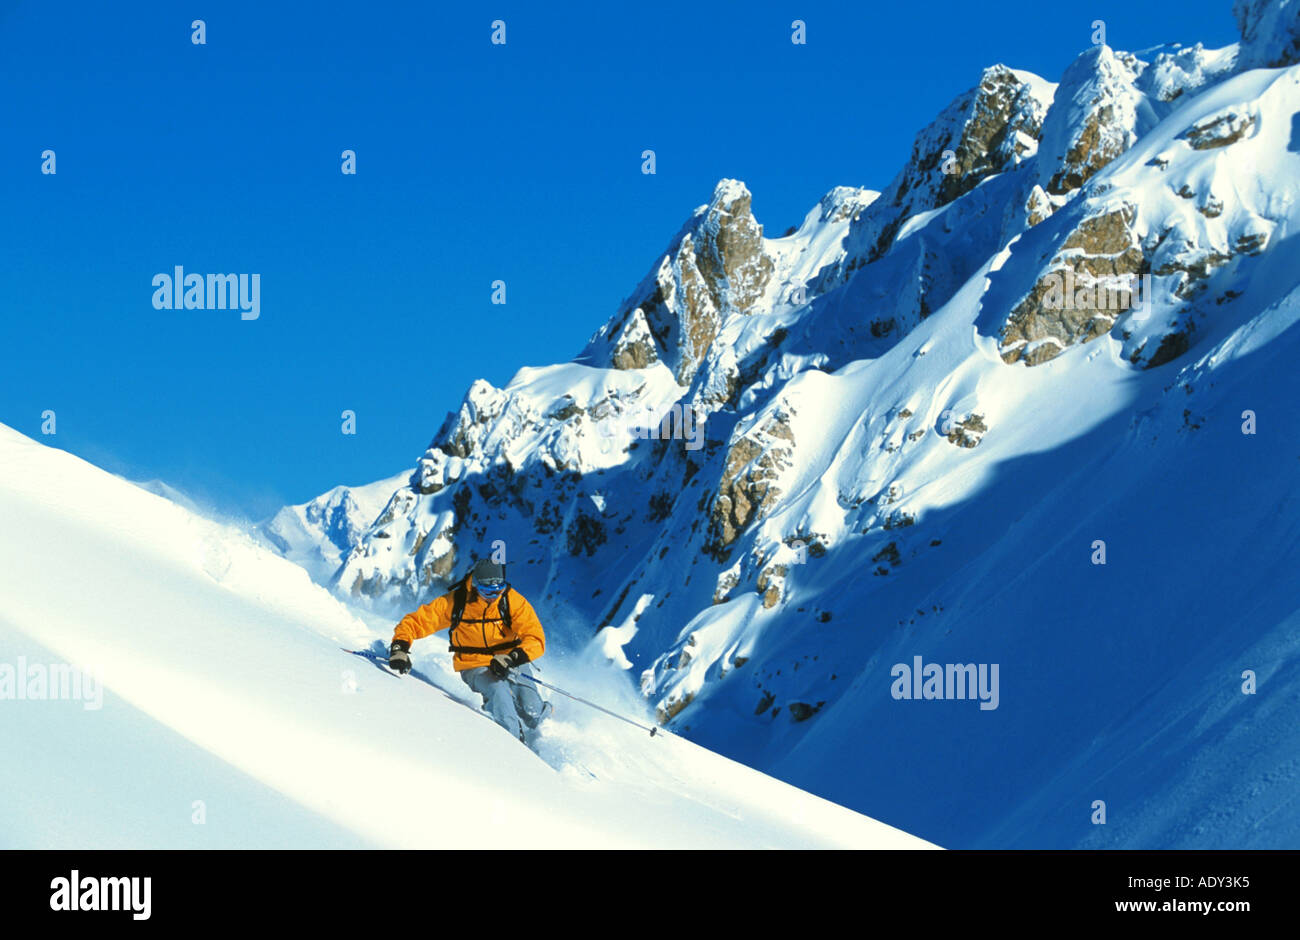 male skier, downhill skiing in deep snow, off-piste, France - Stock Image